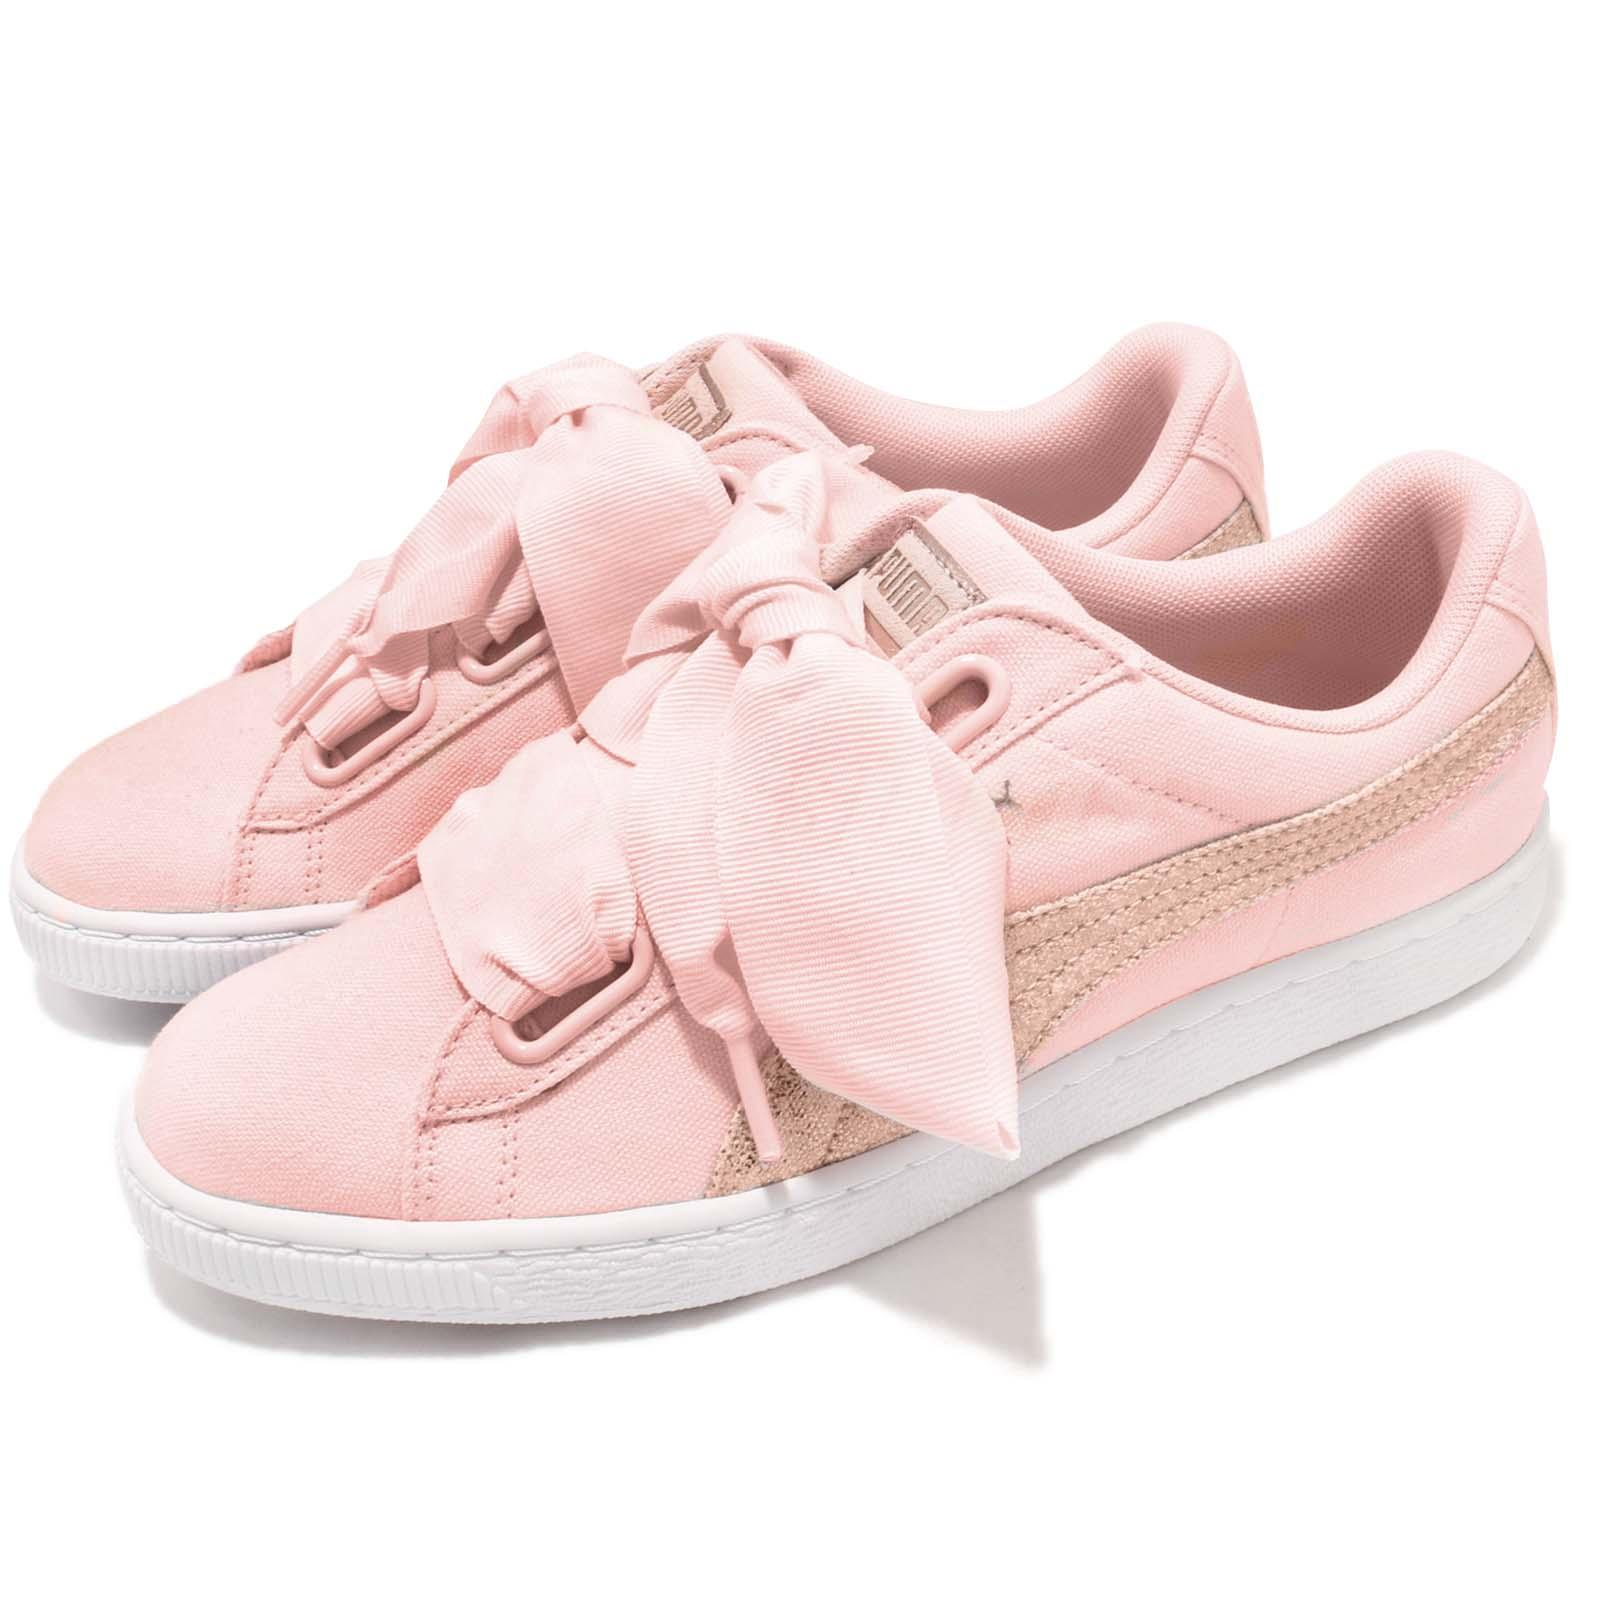 Puma Basket Heart Canvas Wns Pearl White Rose Gold Women Casual Shoes 366495 02